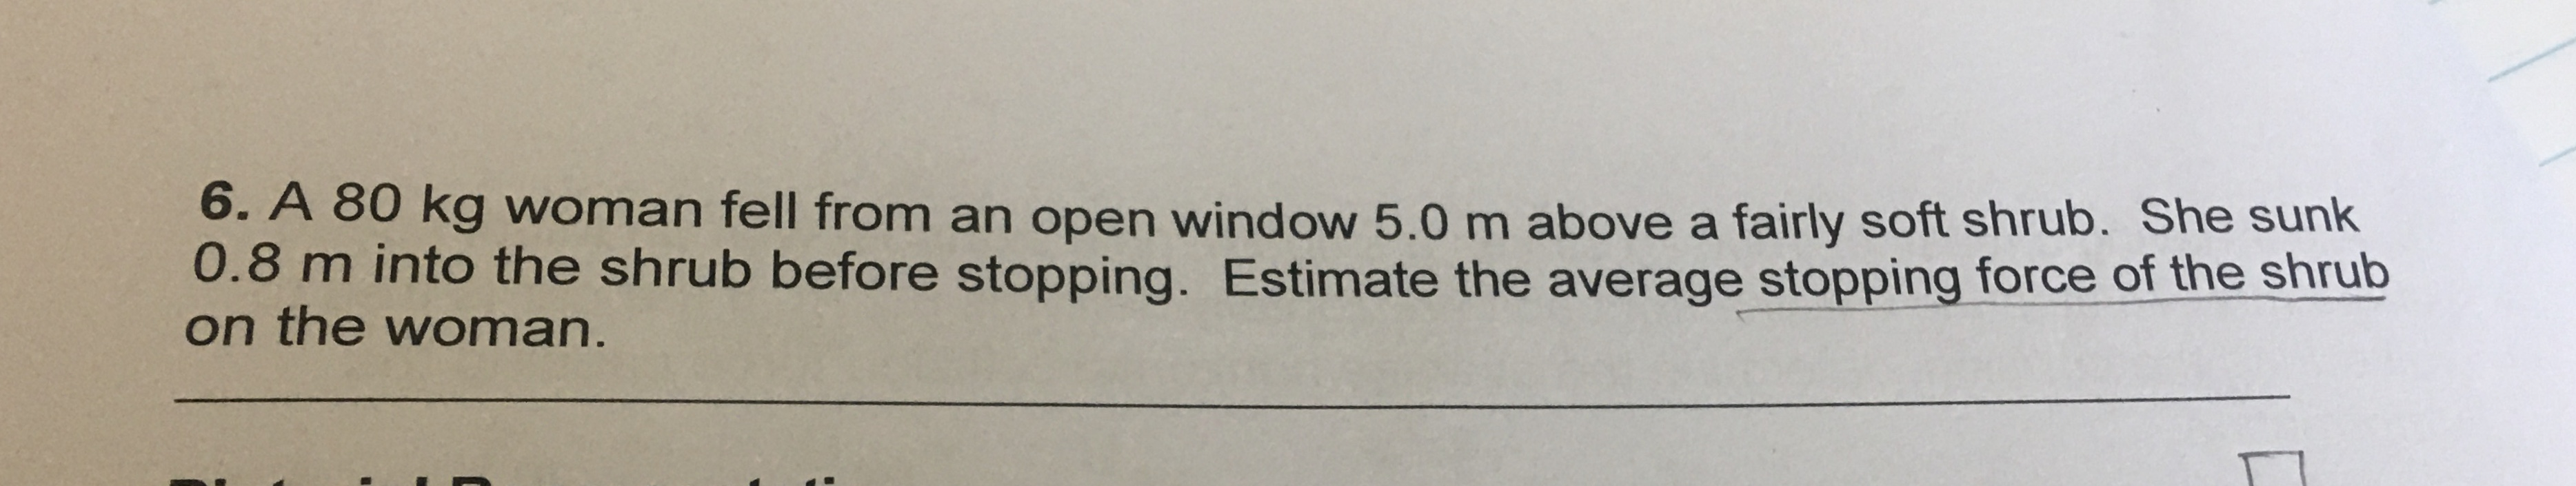 6. A 80 kg woman fell from an open window 5.0 m above a fairly soft shrub. She sunk 0.8 m into the shrub before stopping. Estimate the average stopping force of the shrub on the woman.